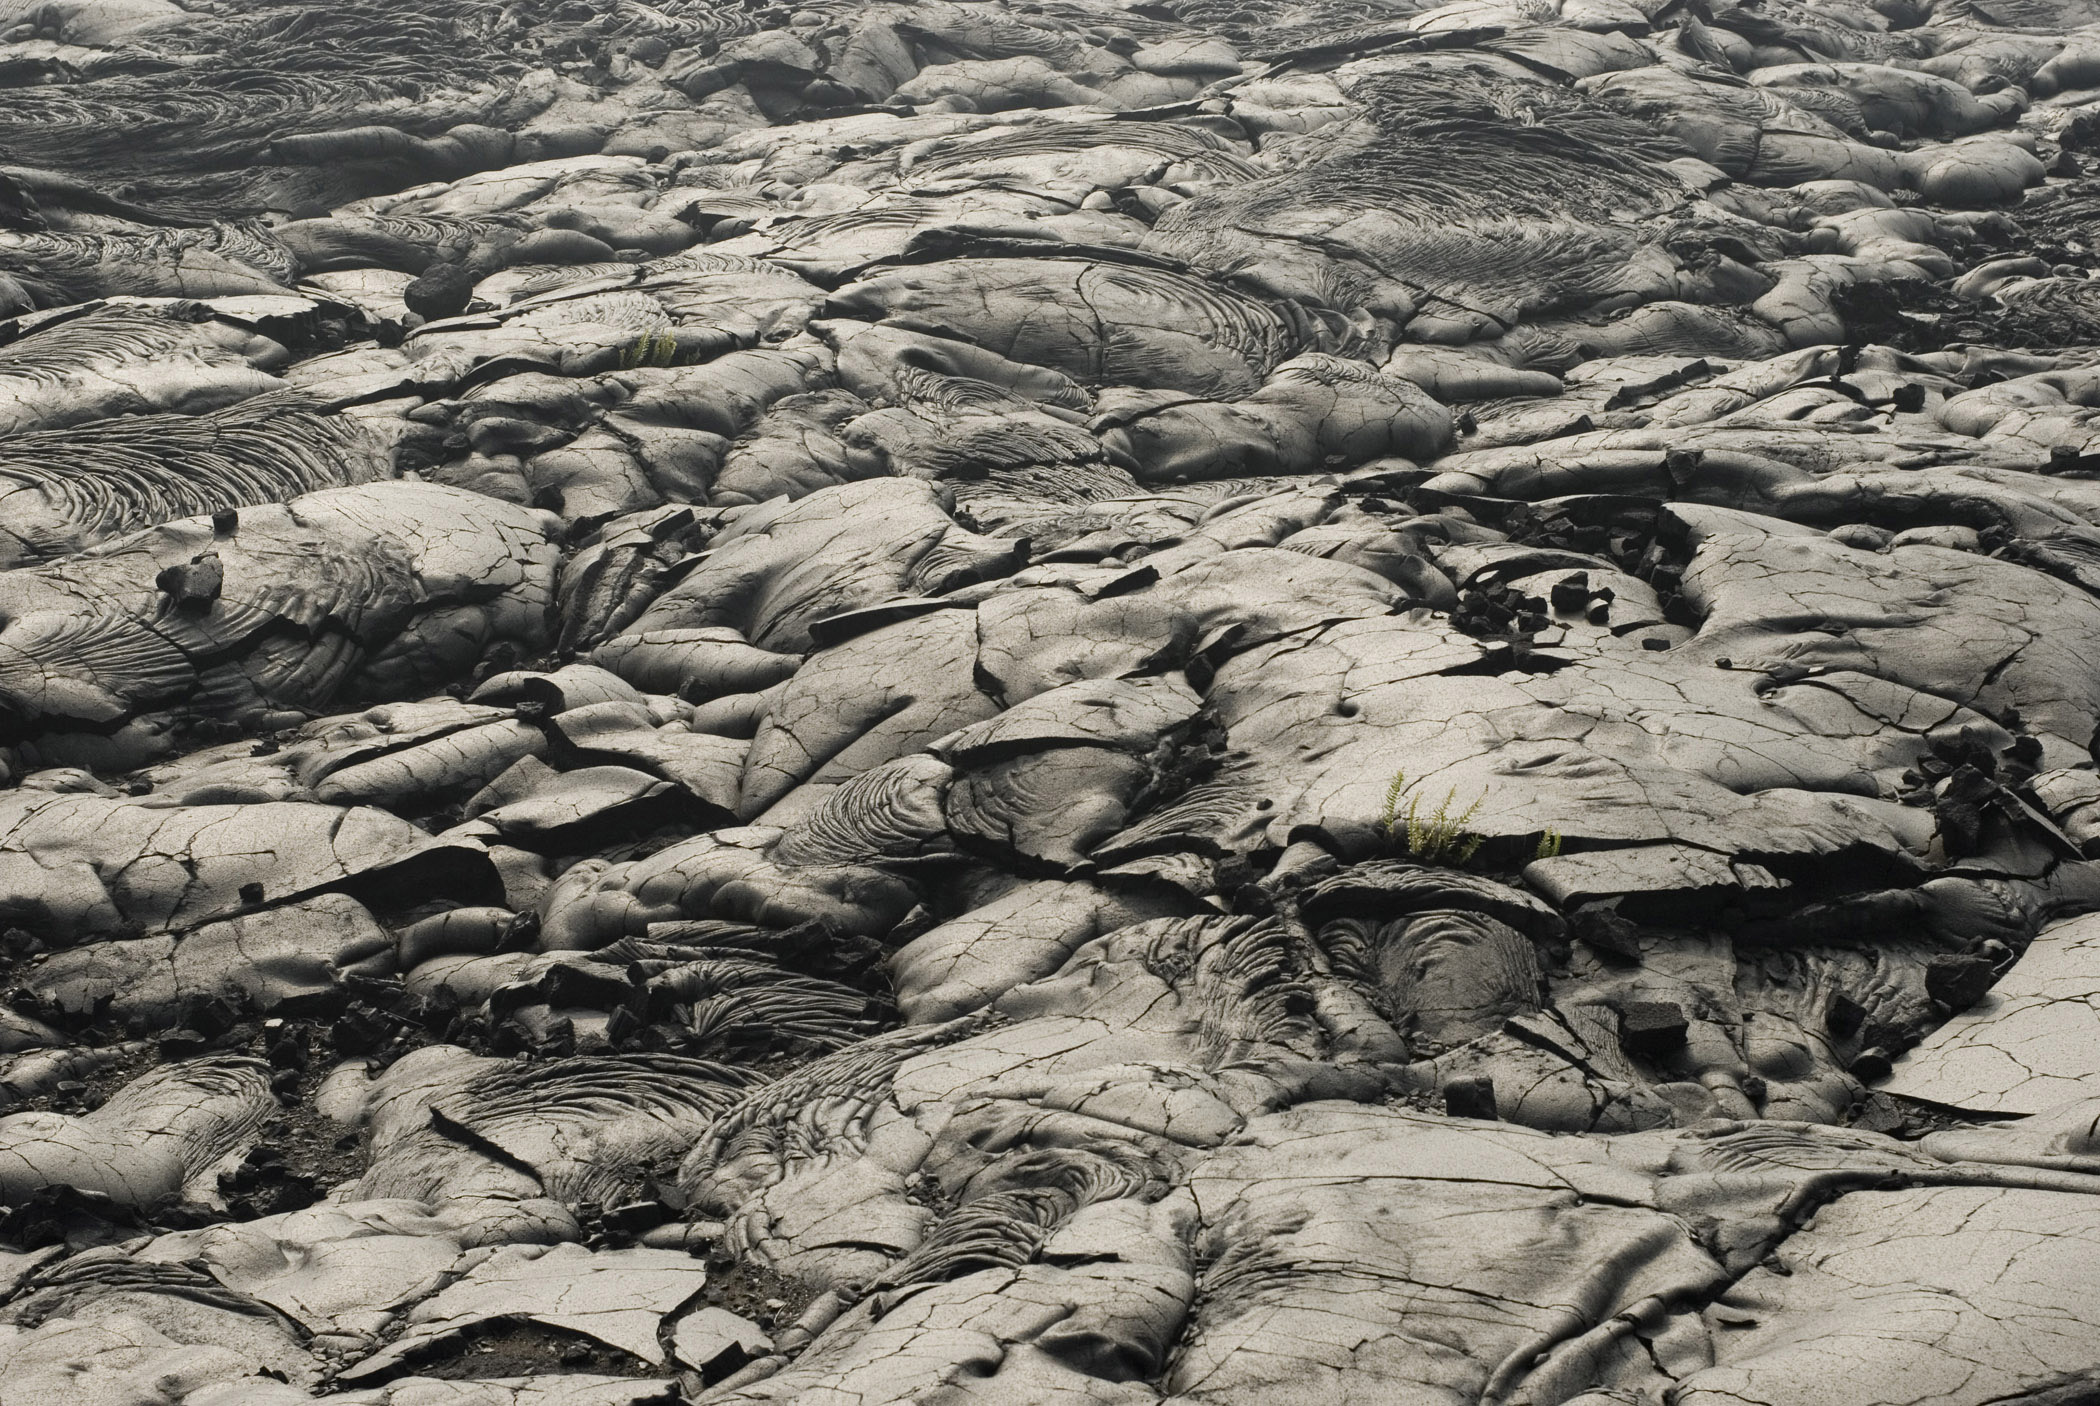 Close up Gray Scale Textured Lava Fields in Hawaii.